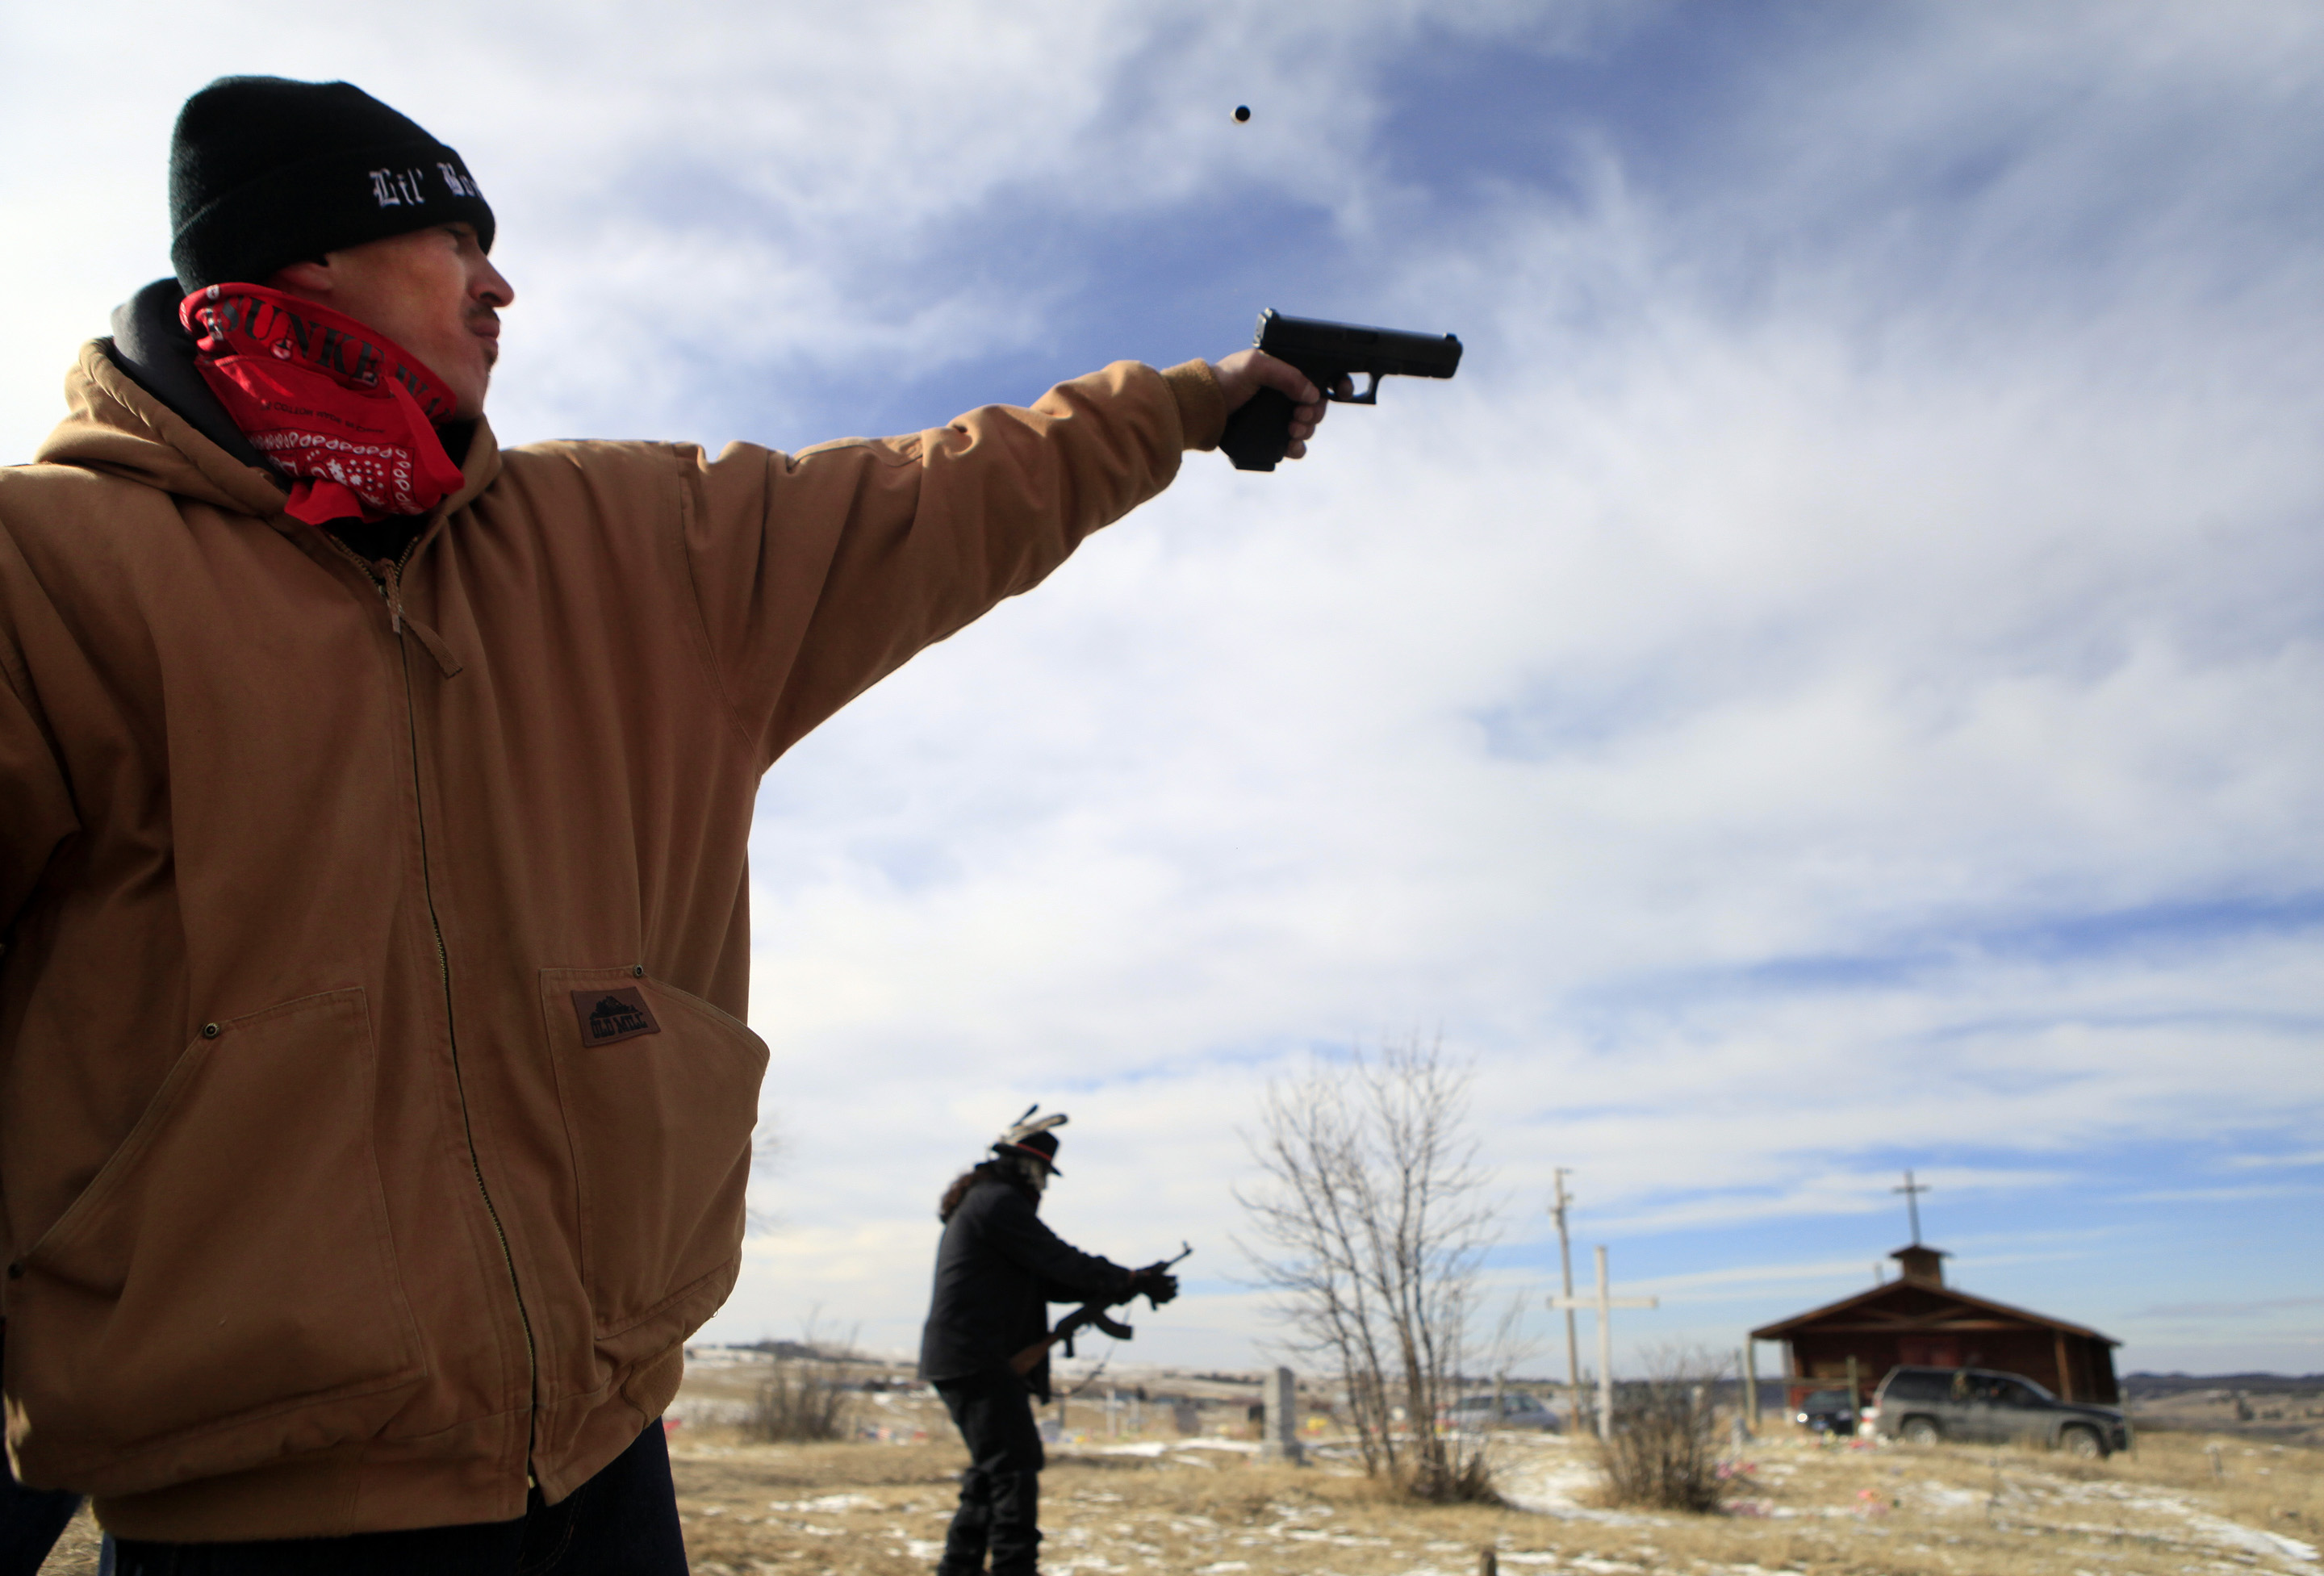 Kevin True Blood, 35, of Porcupine, S.D.,  shoots off his pistol in celebration of the Wounded Knee Liberation Anniversary on the Pine Ridge Indian Reservation, Feb. 27, 2014.